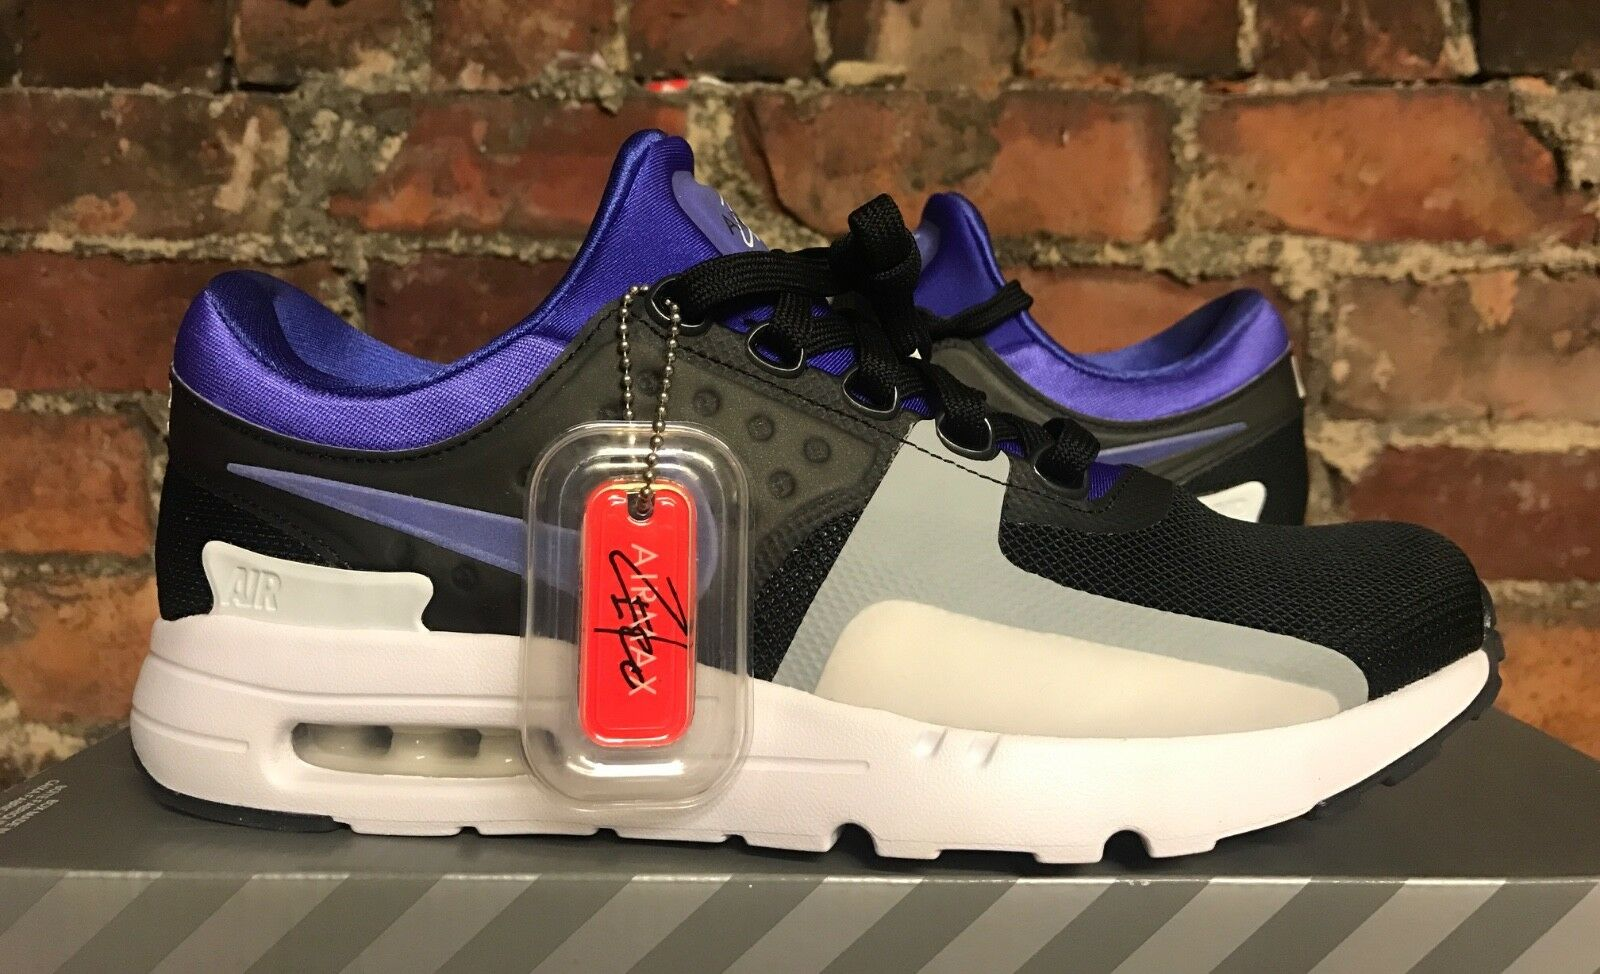 Nike Air Max Zero Qs Eu47.5 Persan purple black white 789695 004 Baskets